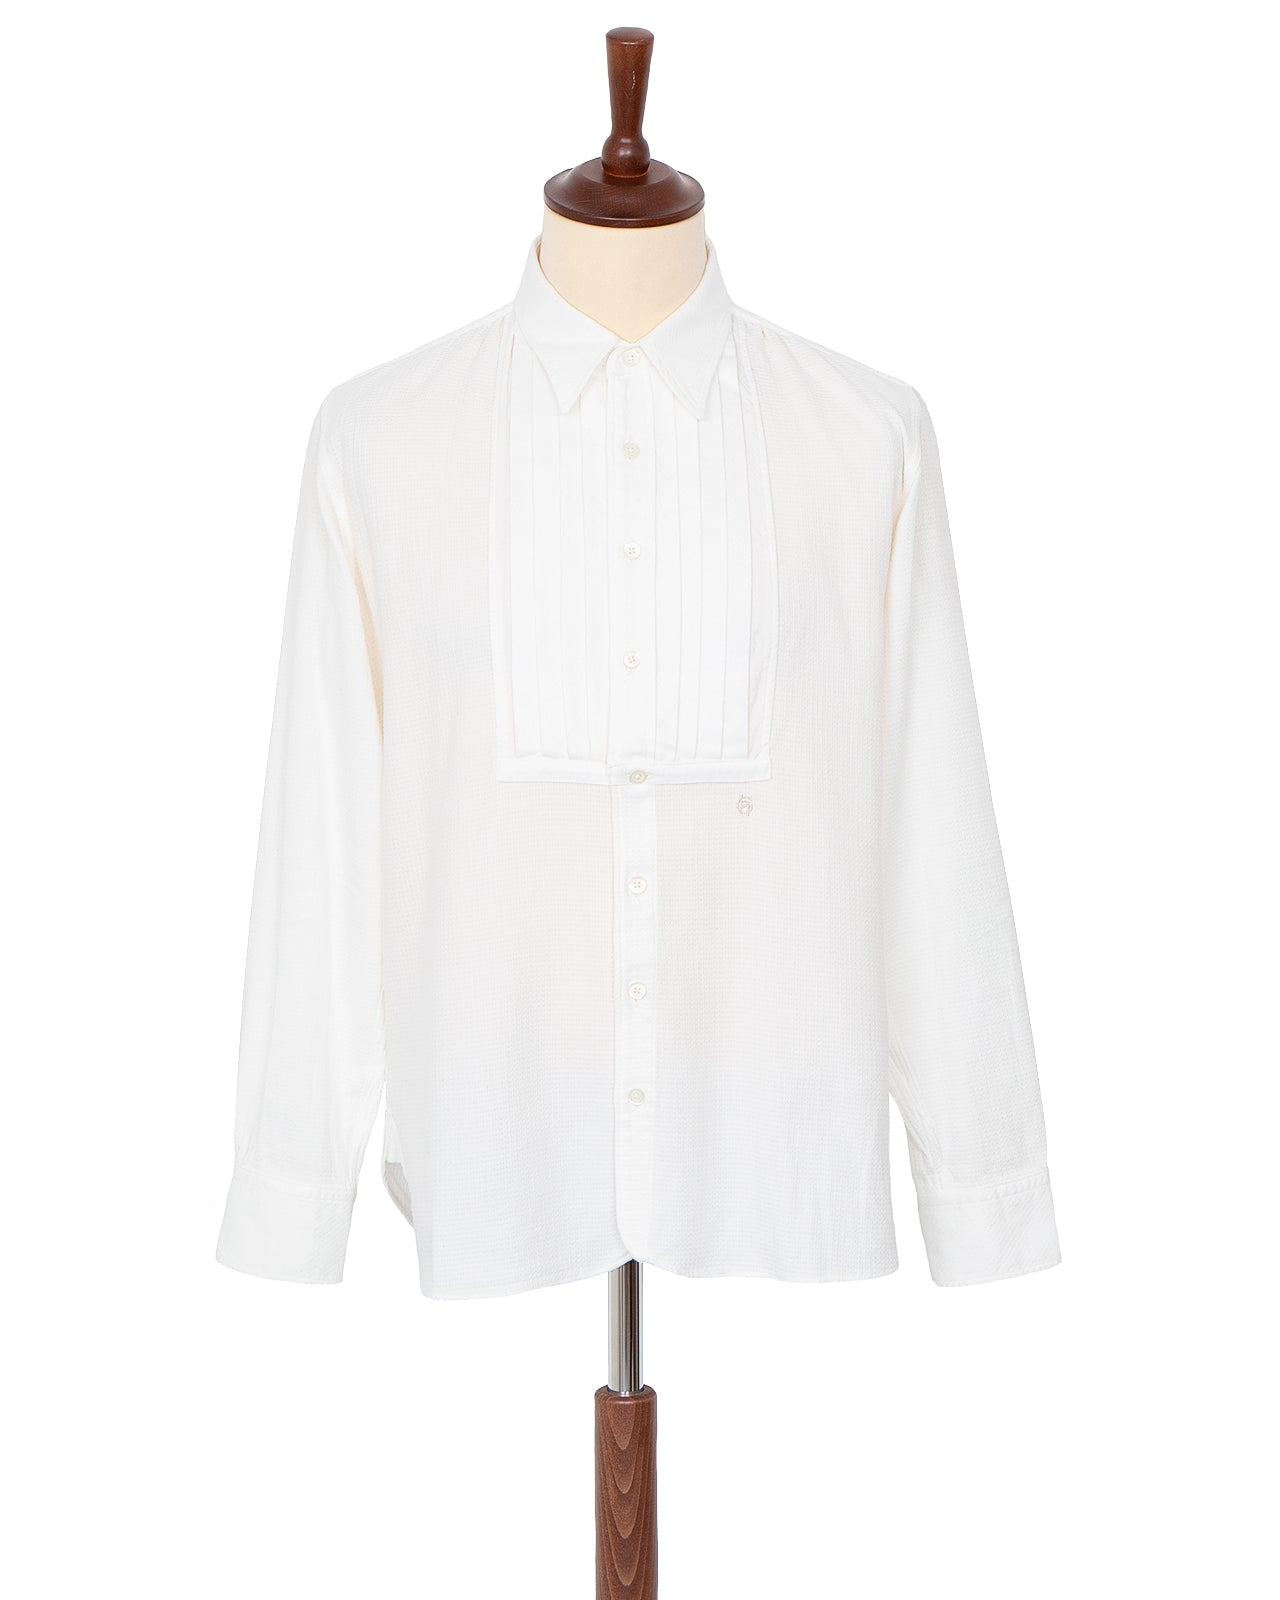 By Glad Hand, Point Collar Shirt, White